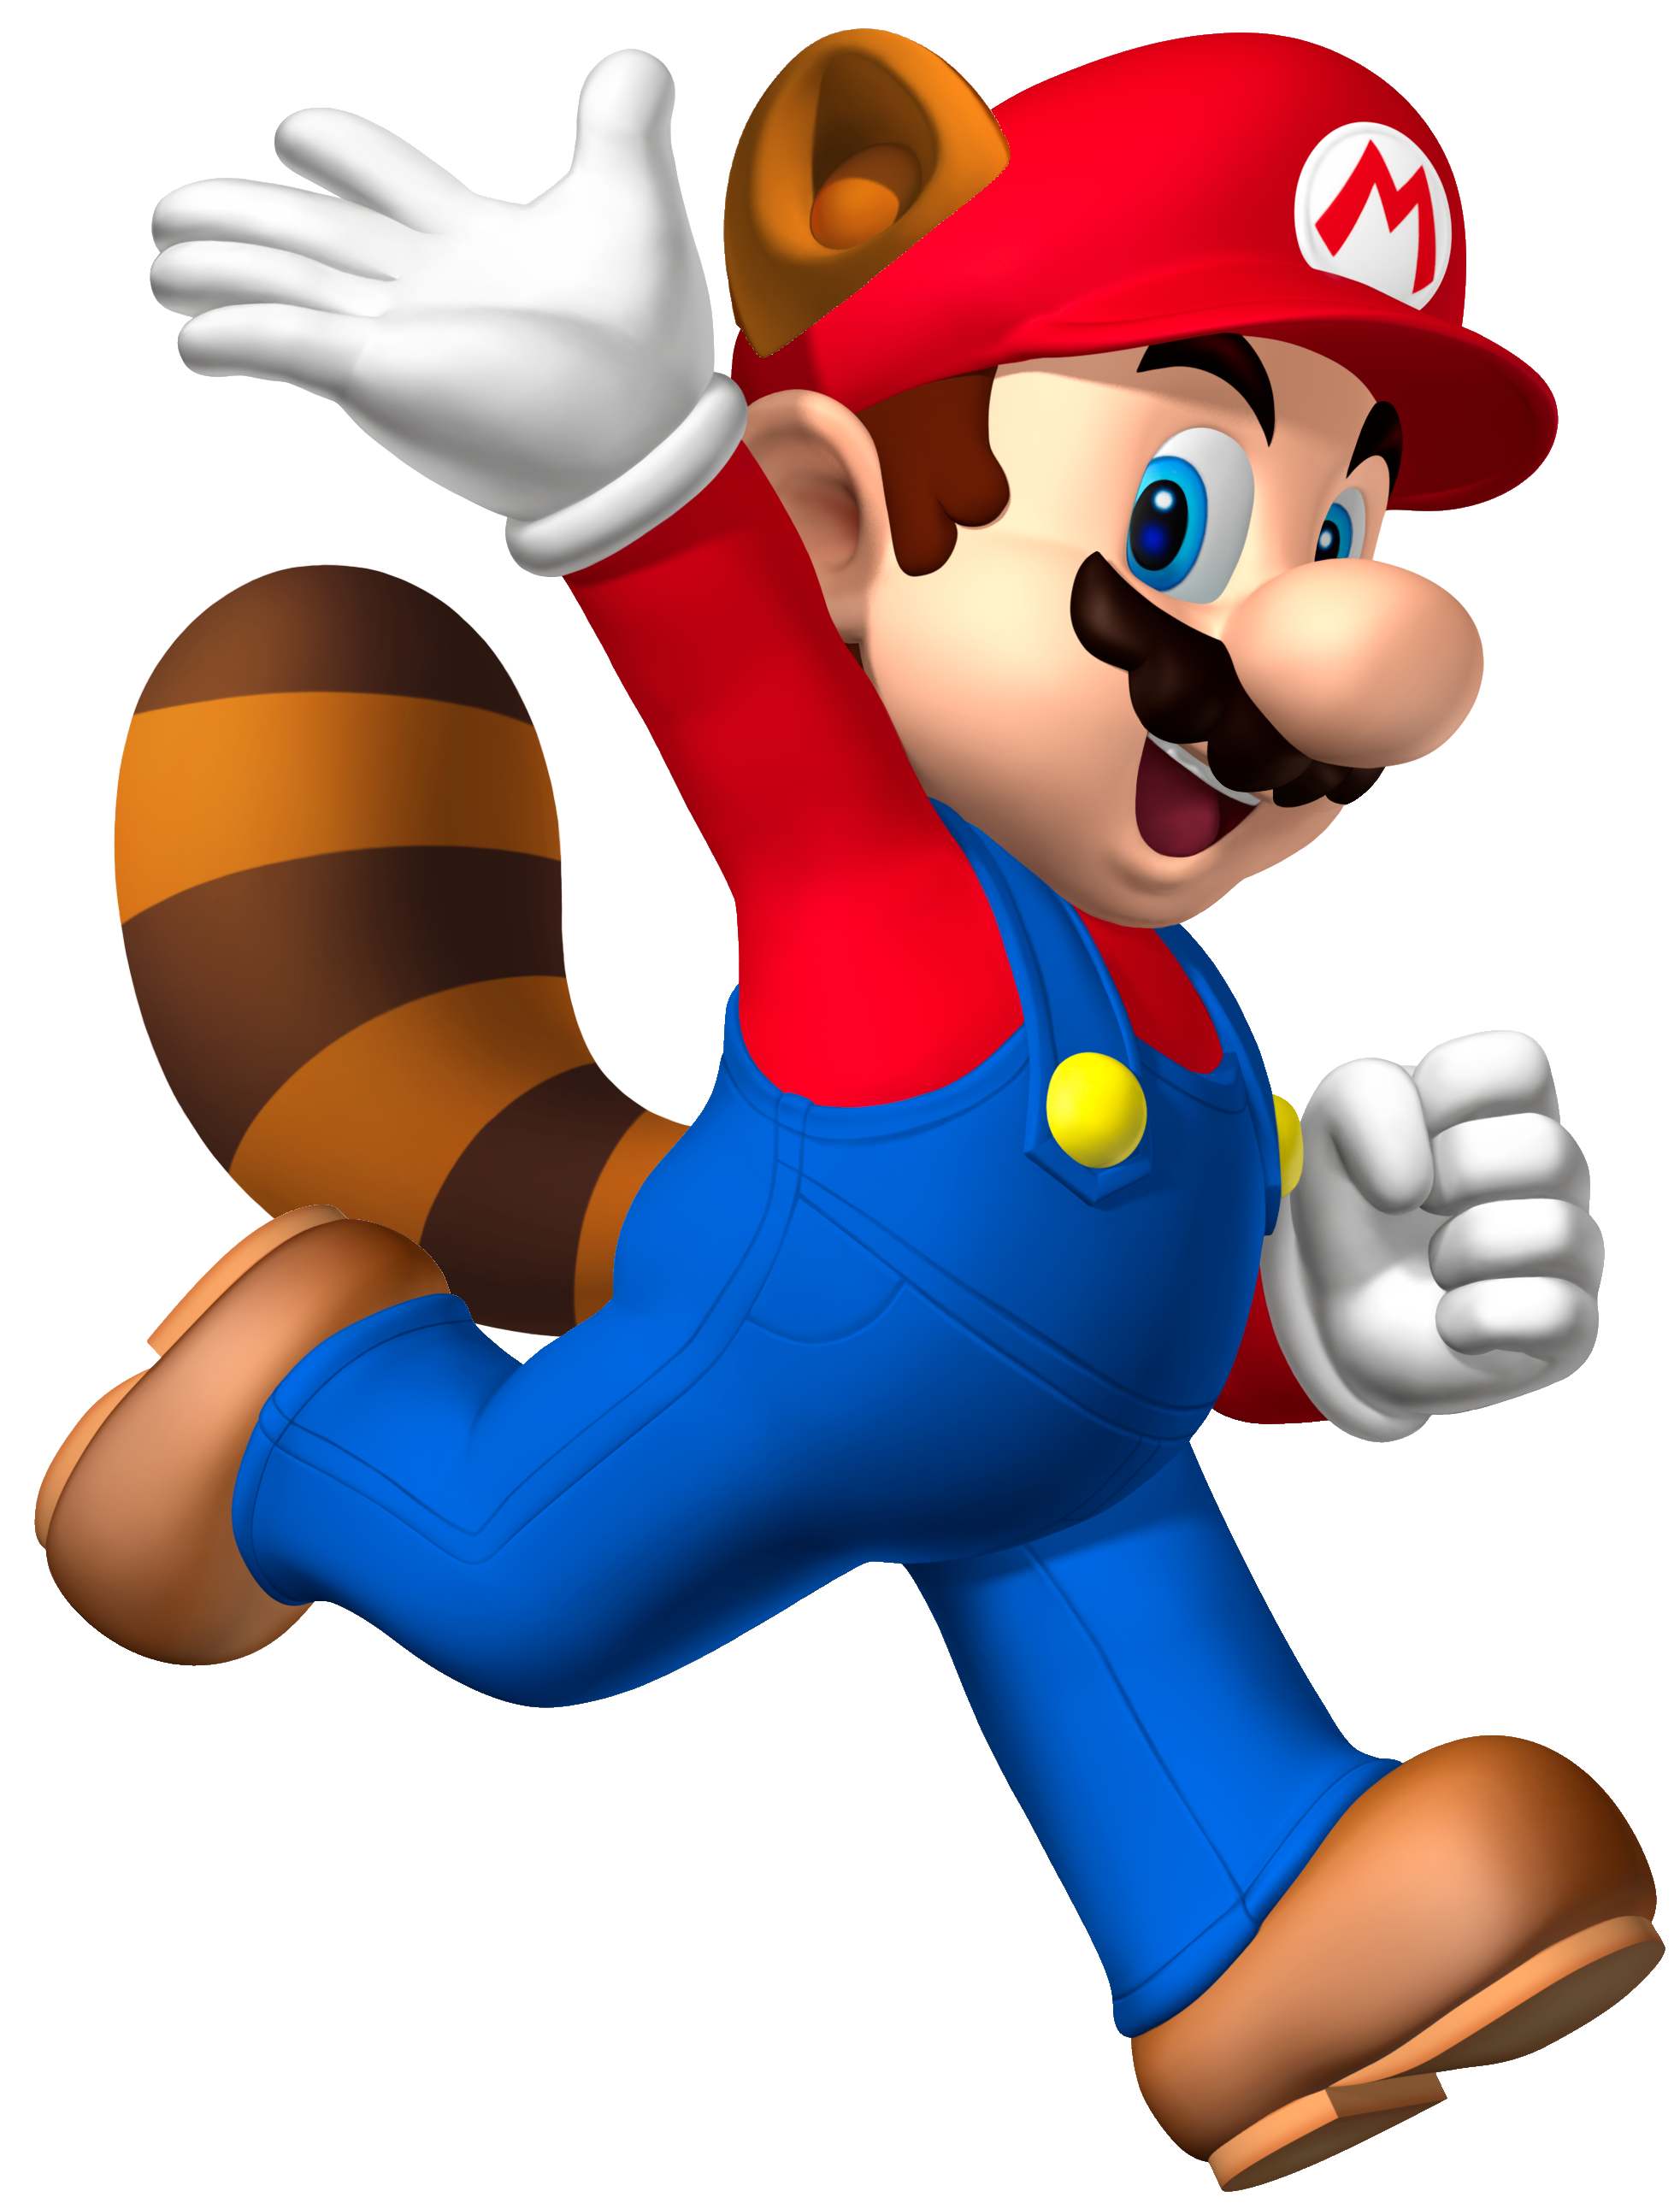 Super Mario  Raccoon PNG Image